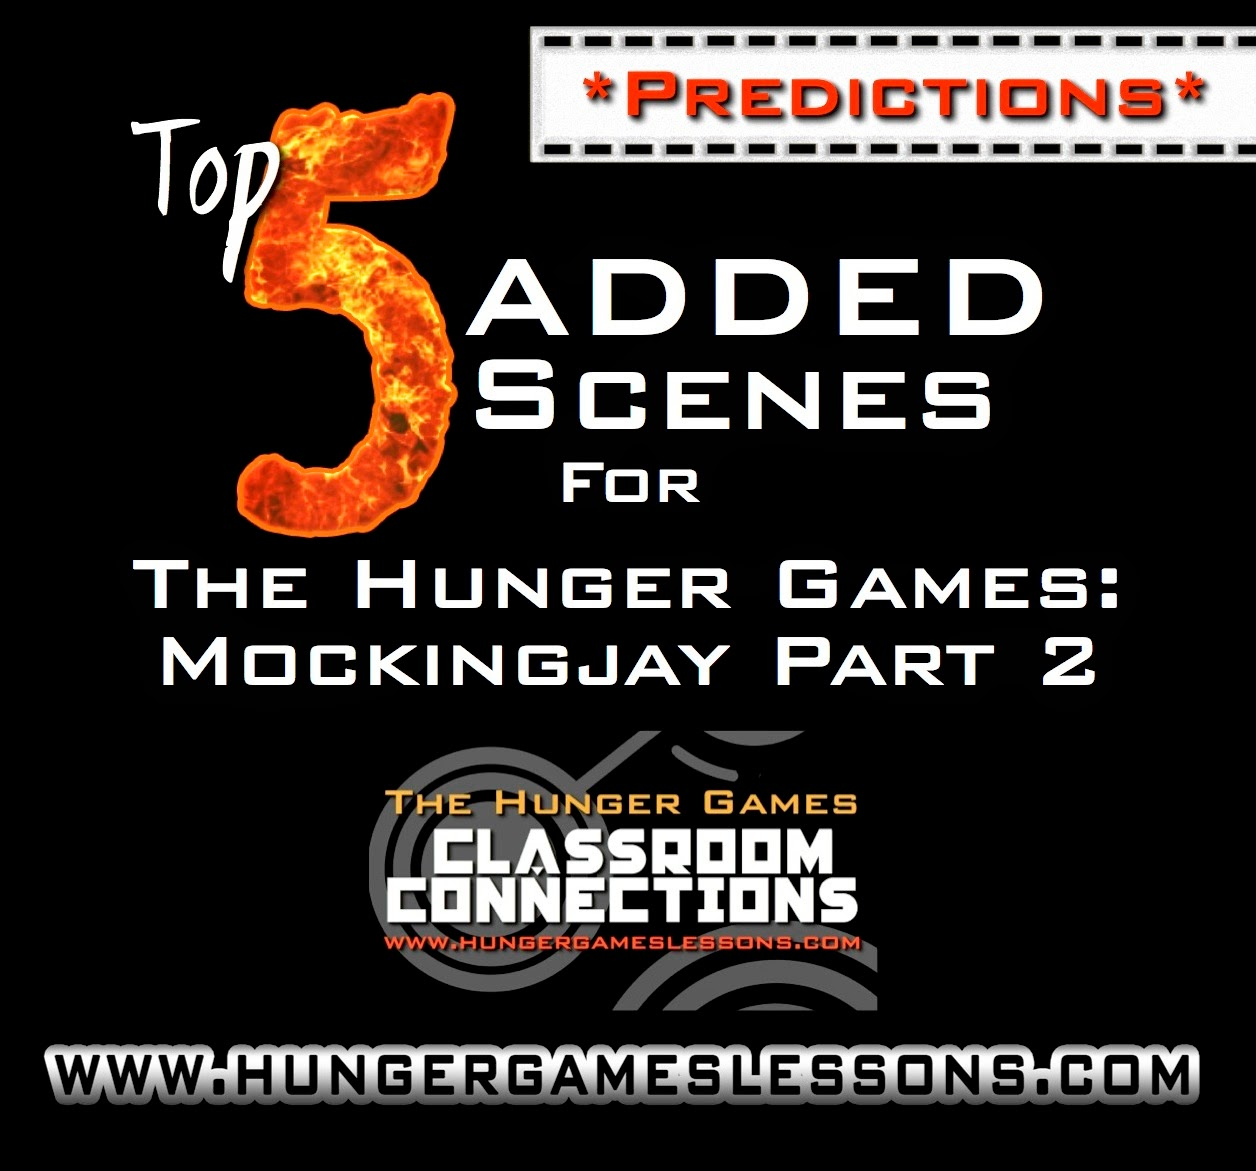 Predicted Additional Scenes for Mockingjay Part 2